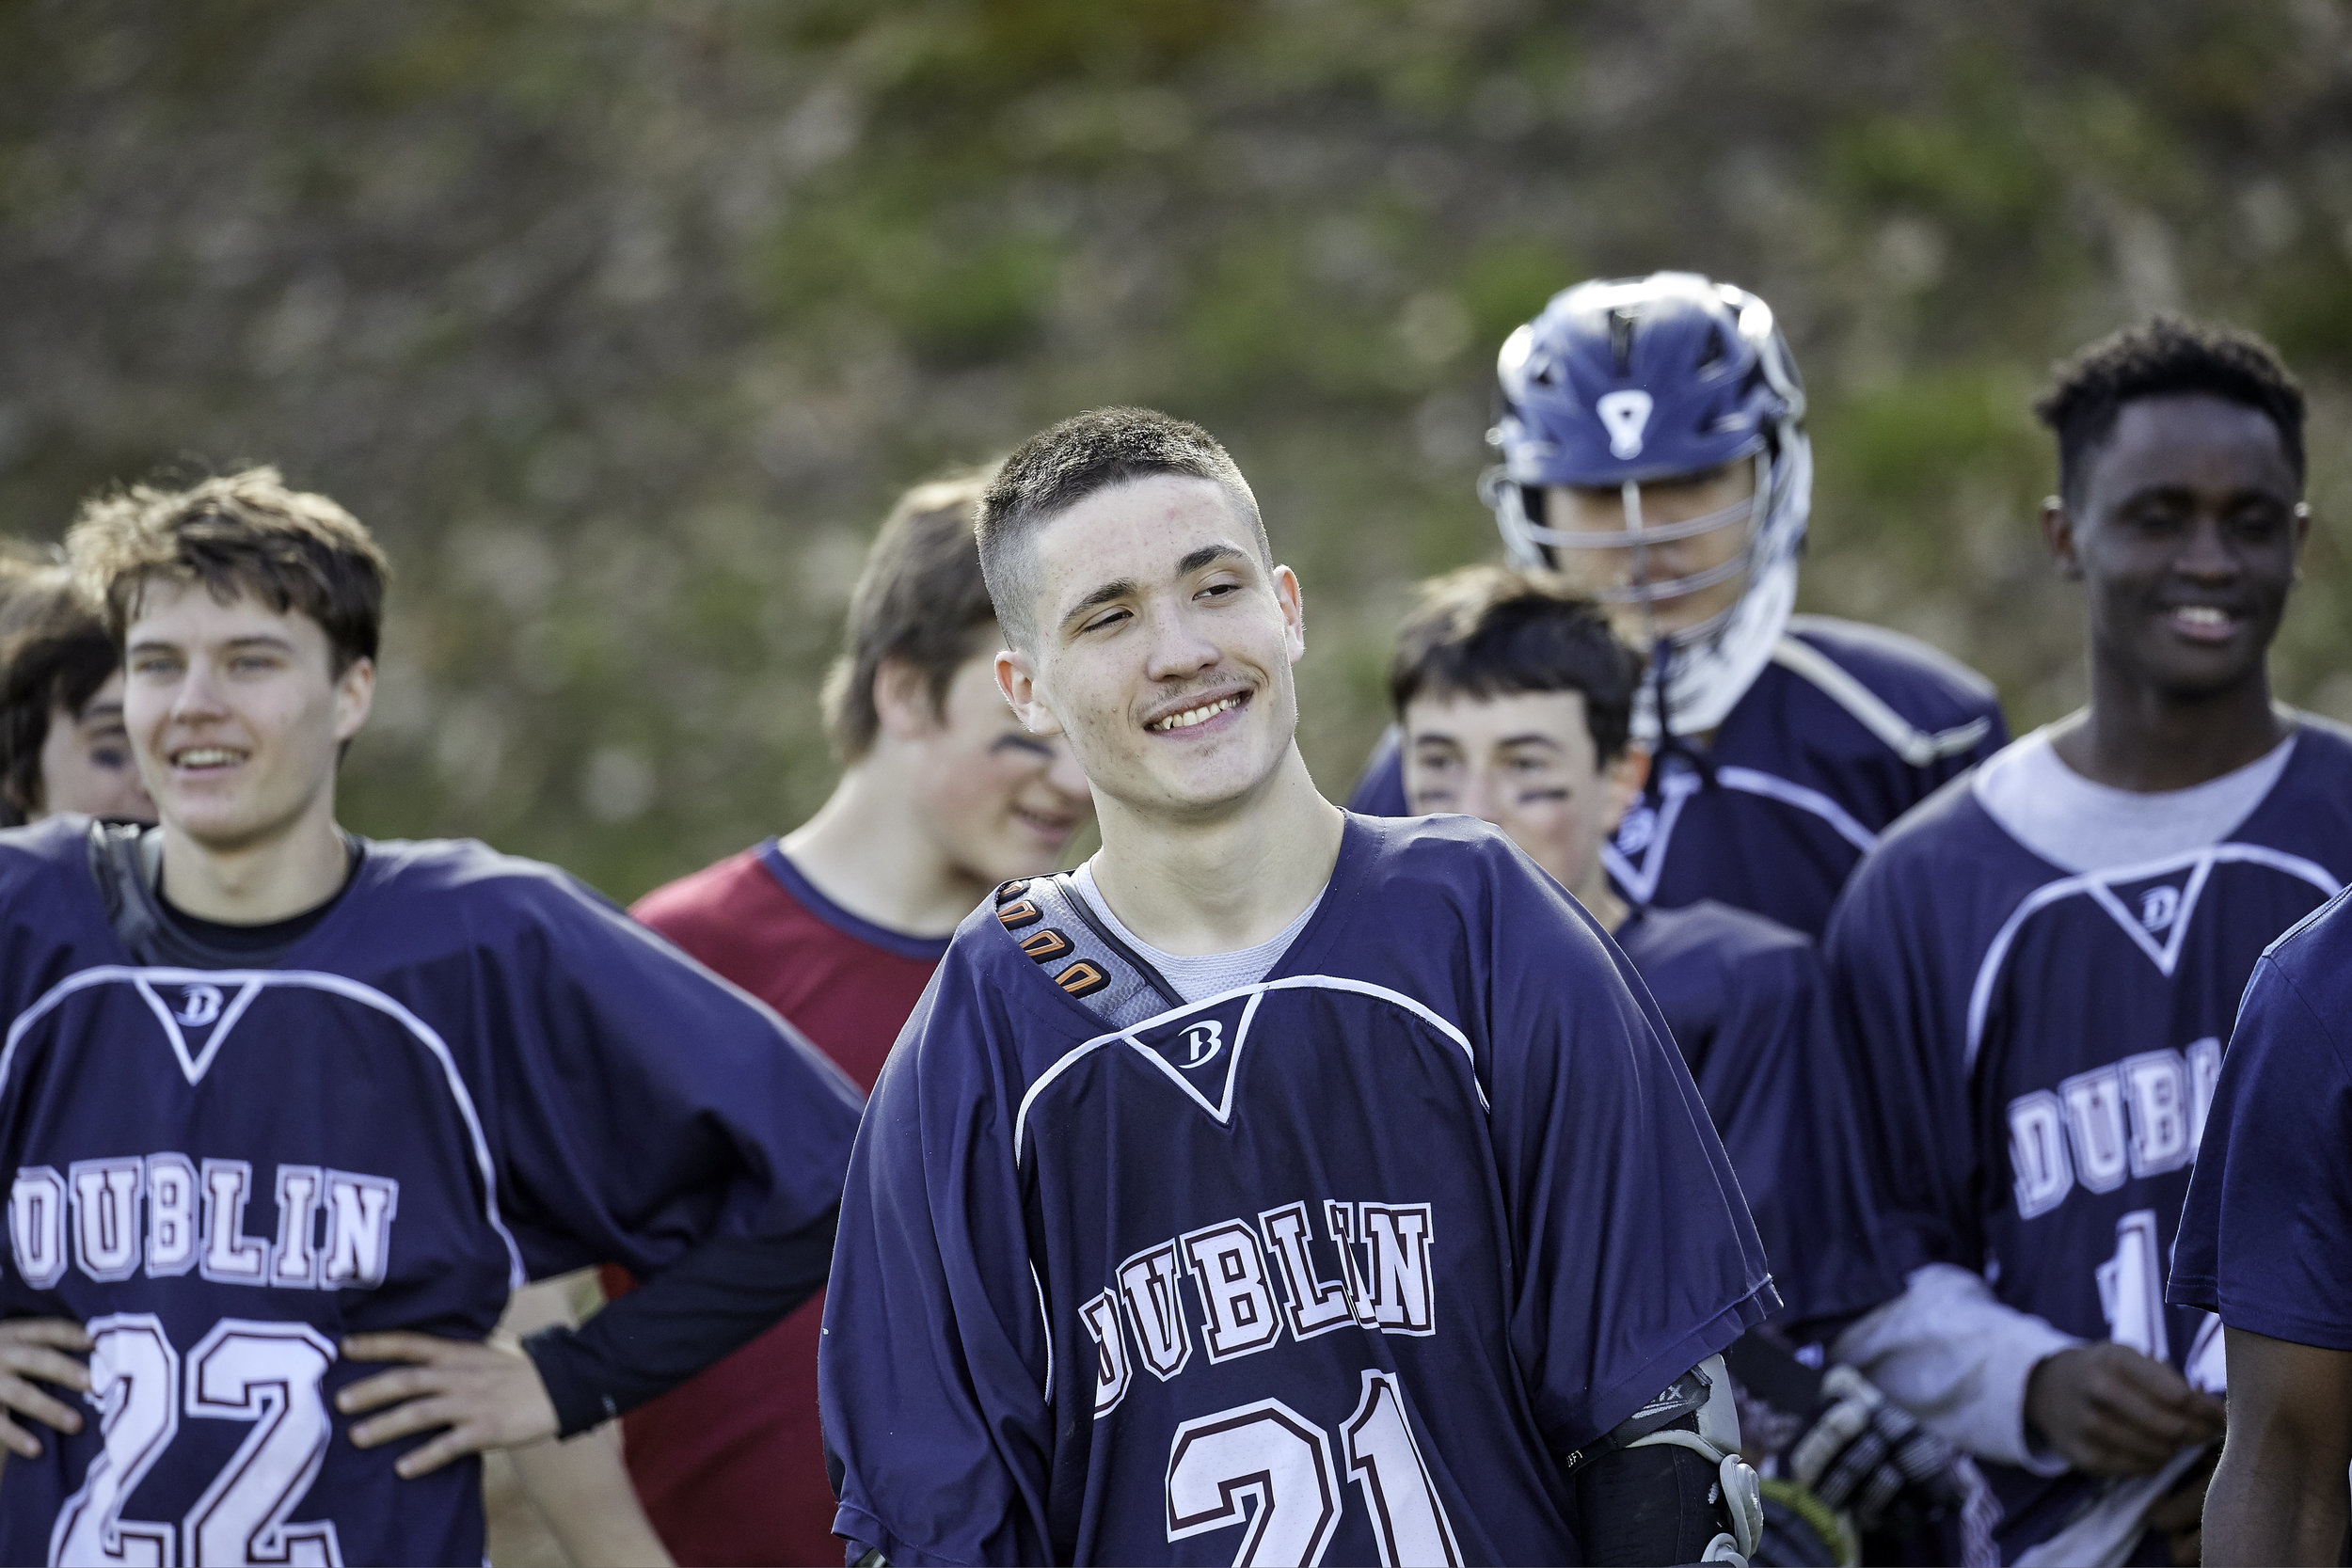 Boys Lax vs Northfield Mount Hermon JV - May 15 2019 - 0083.jpg